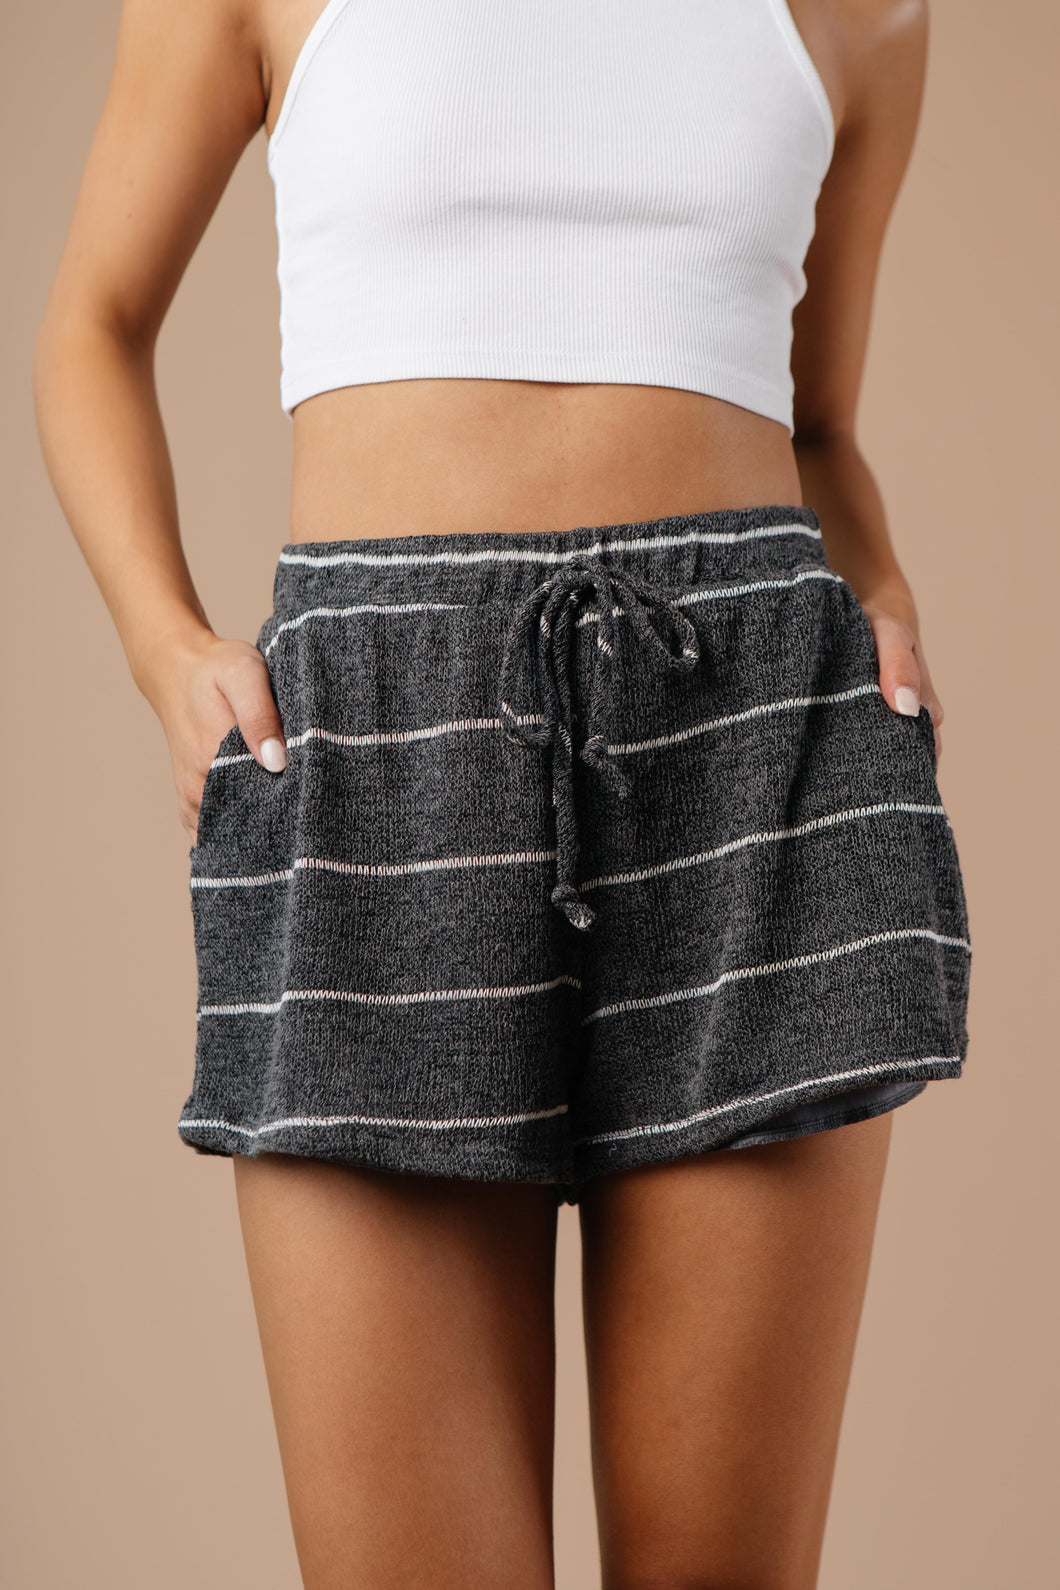 Willow Striped Shorts in Charcoal - Smith & Vena Online Boutique